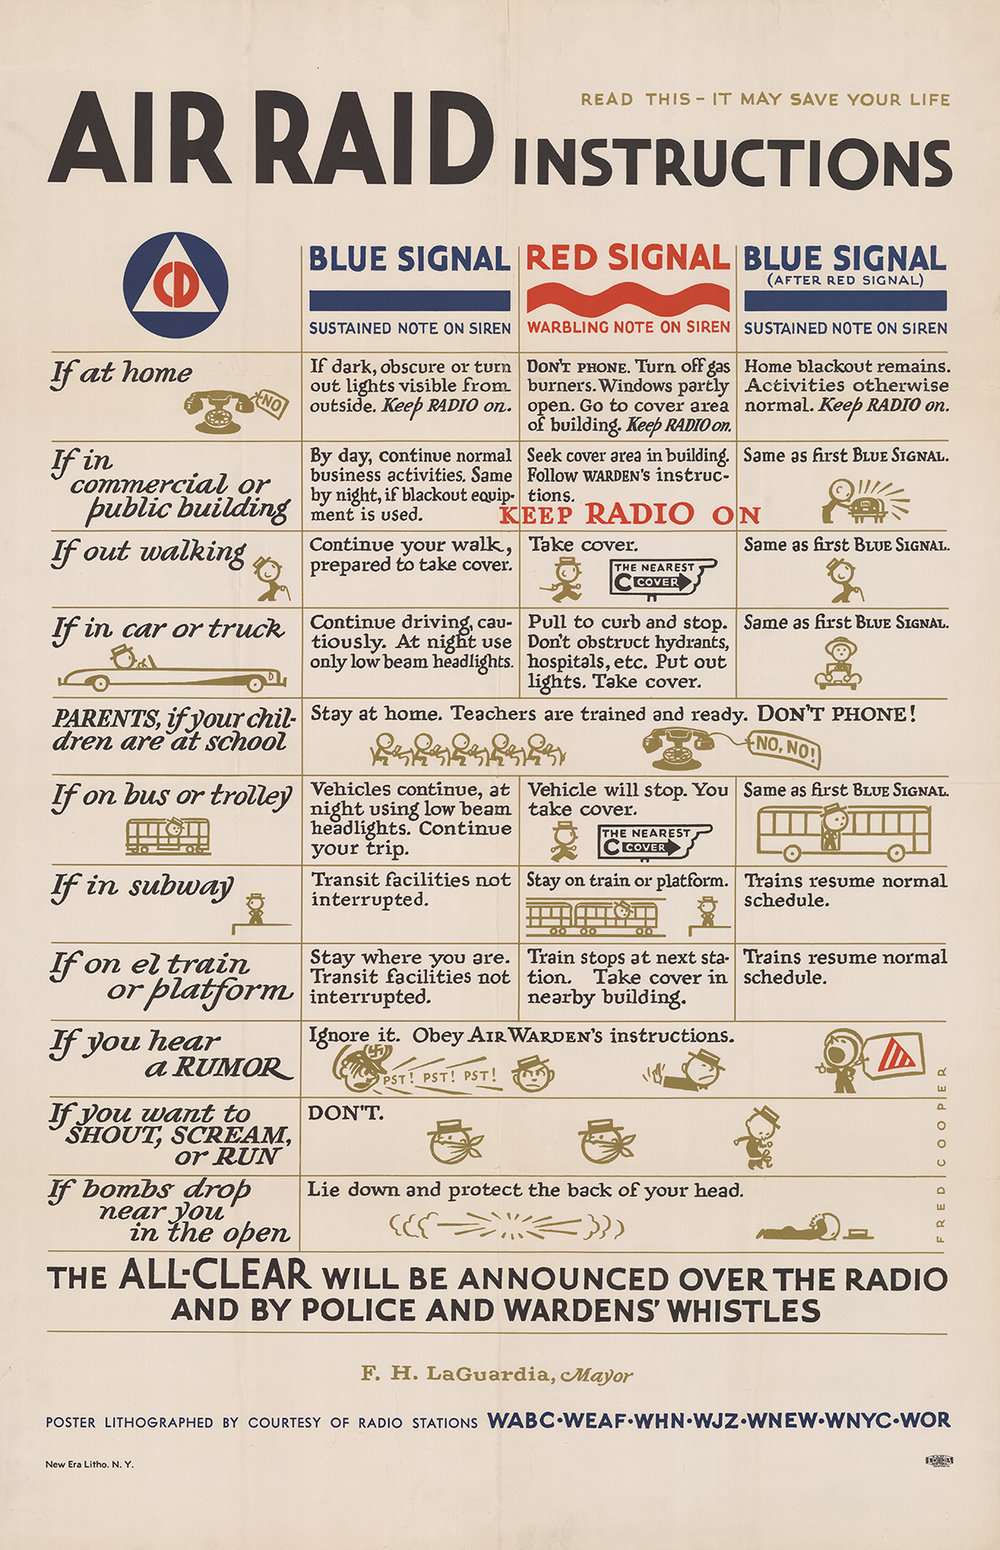 Air Raid Instructions, New Era Litho. Mayor La Guardia Papers, New York City Municipal Archives.